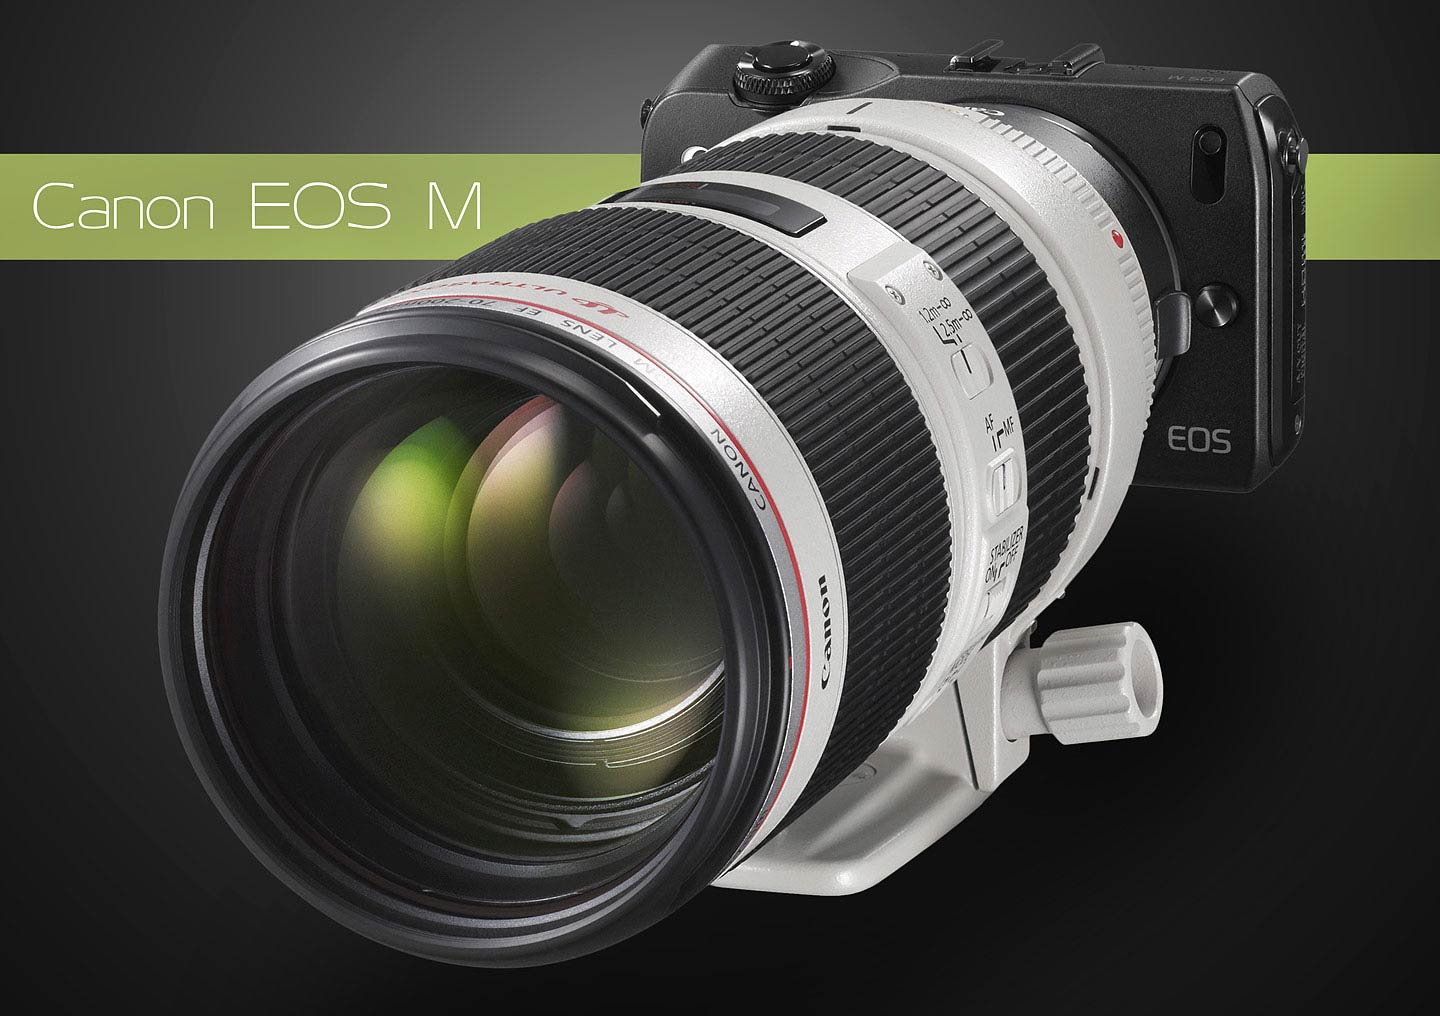 Canon EOS M with Adapter Mount and 70-200mm f/2.8L IS II